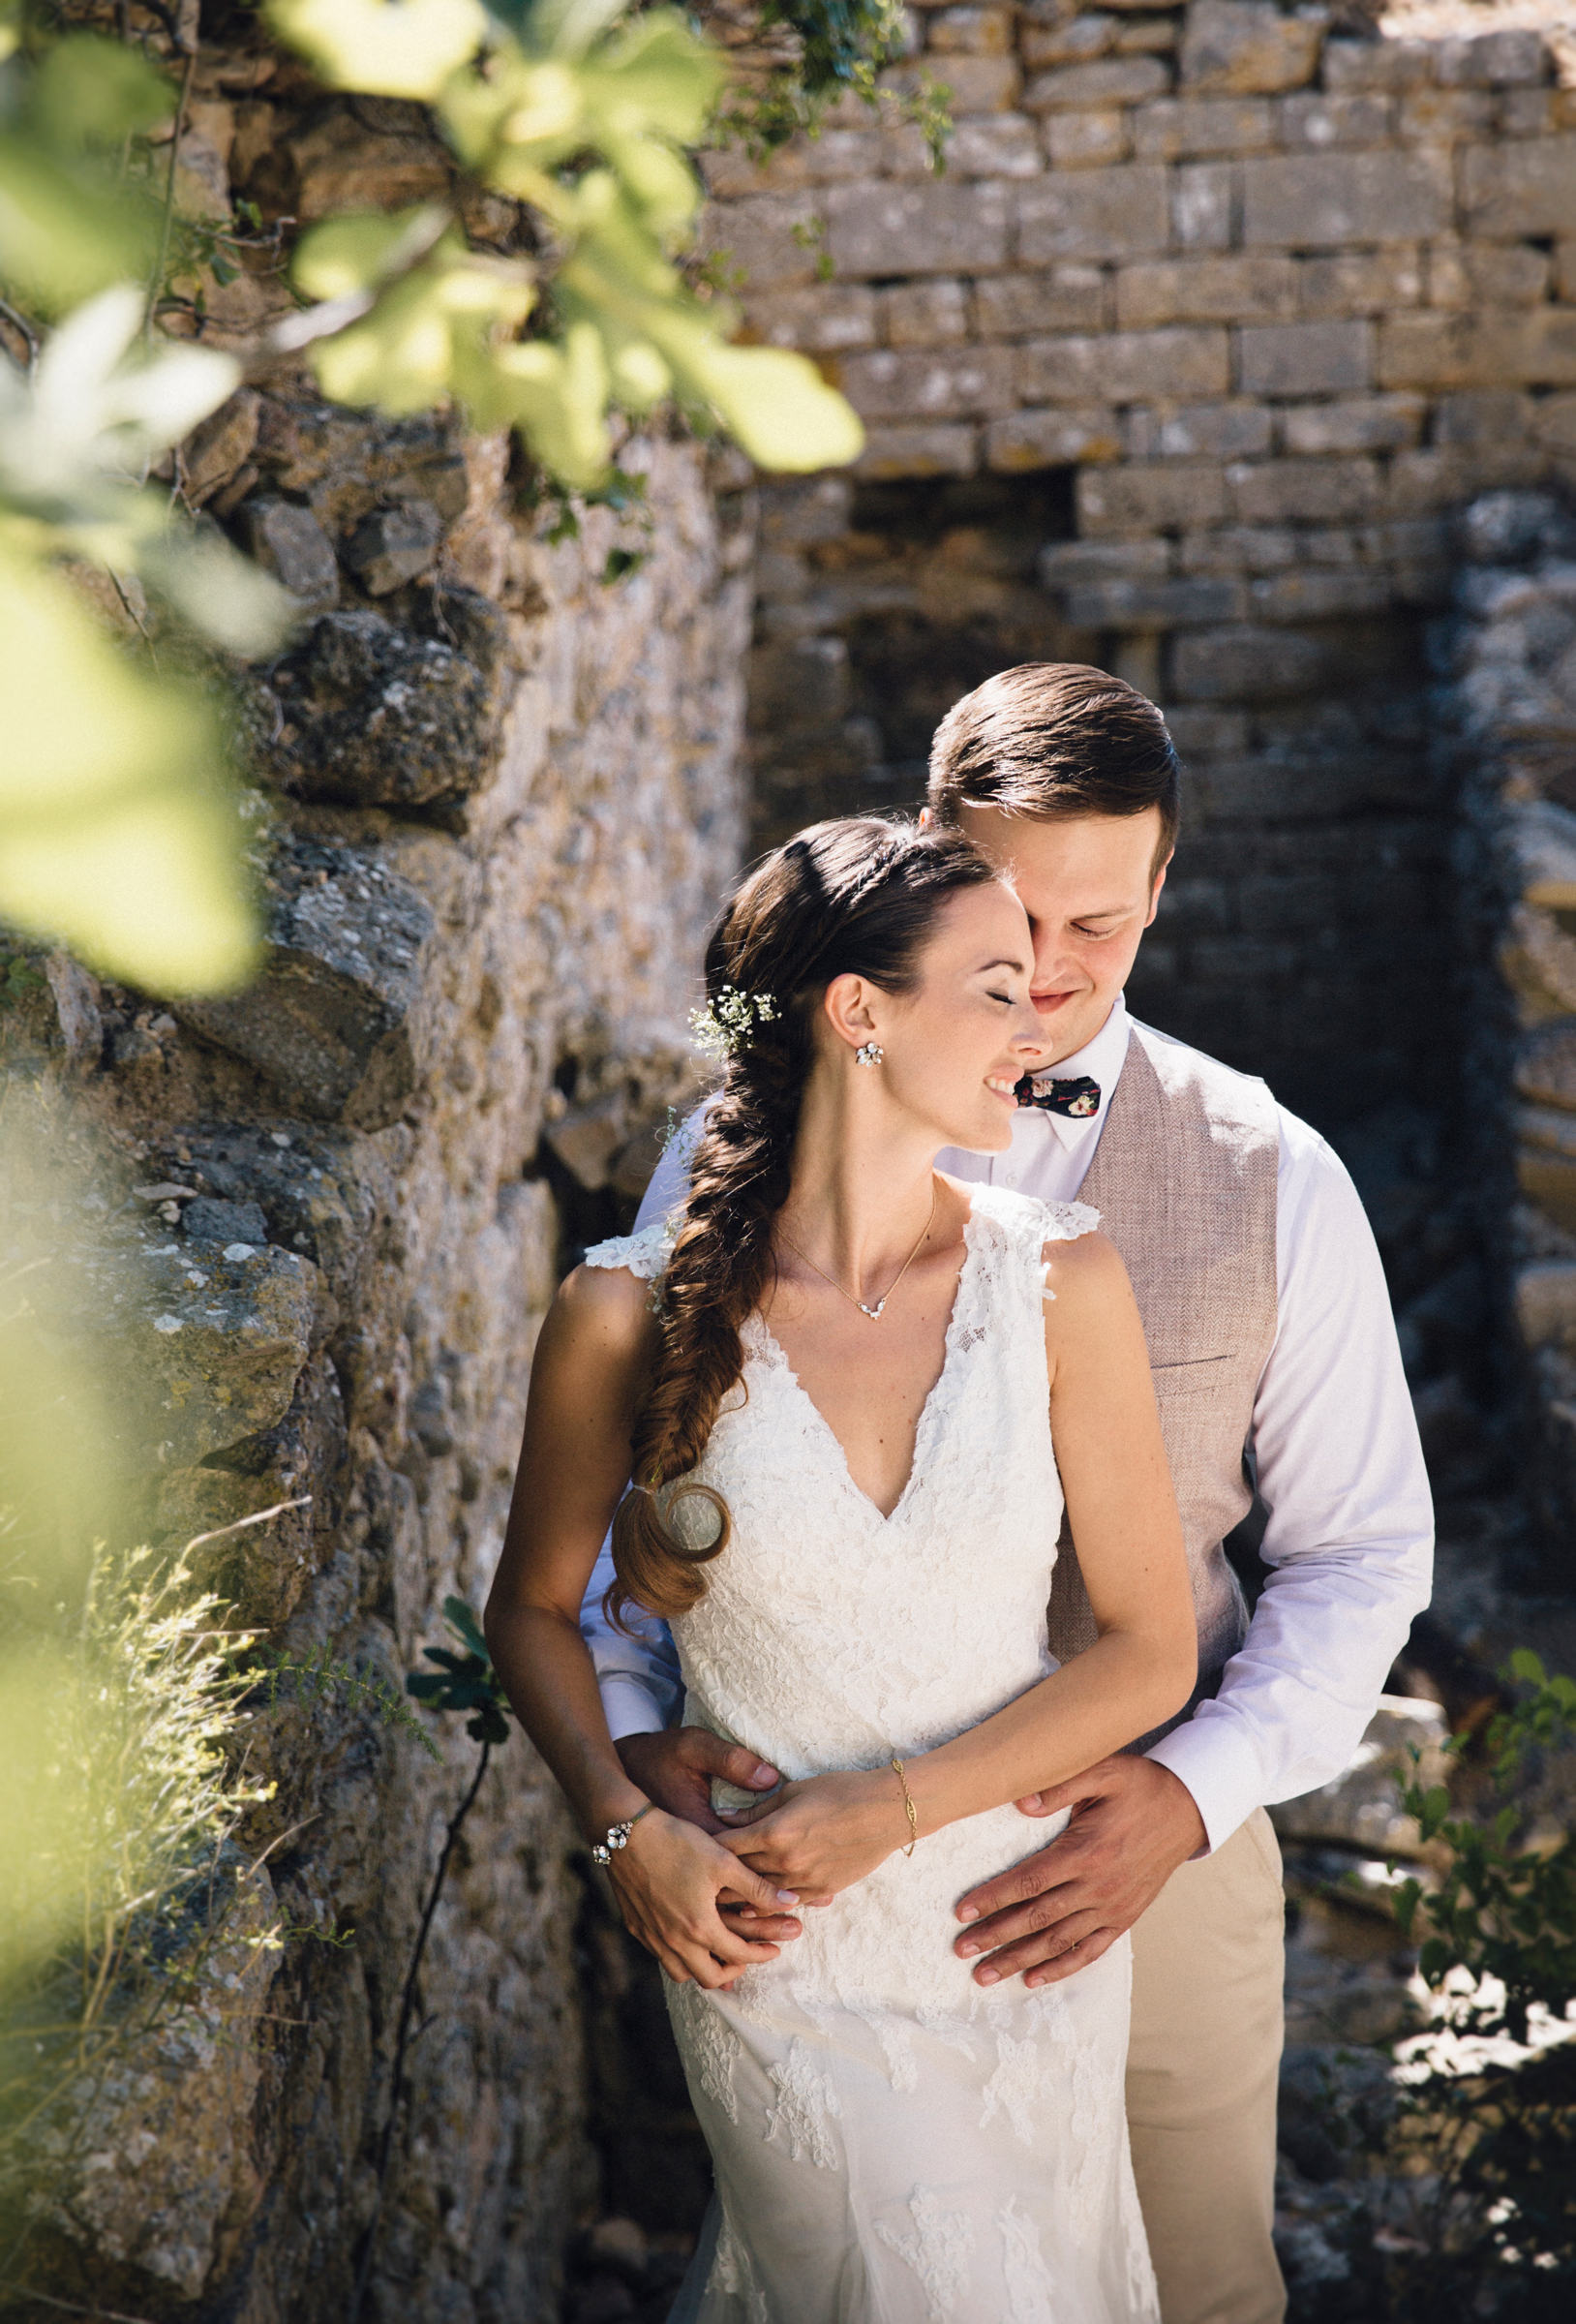 paperbird photography, first look, france wedding, wedding photography